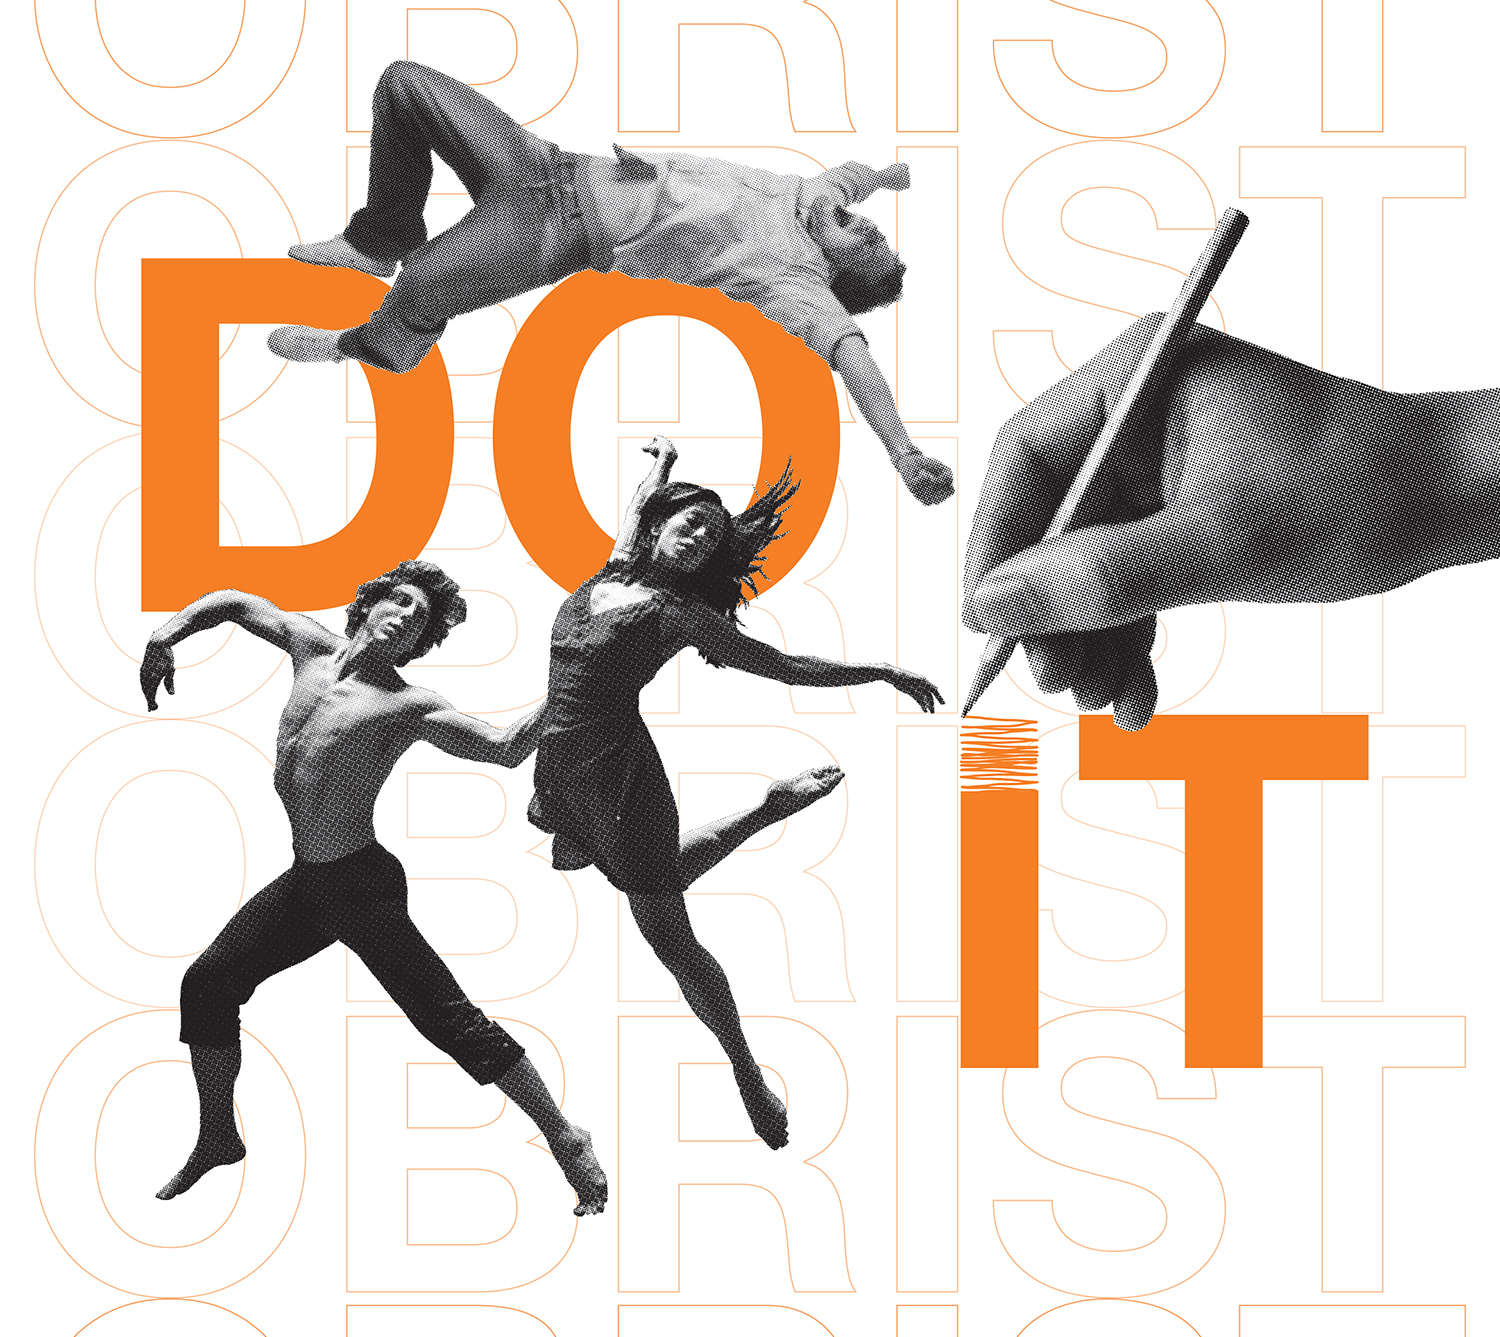 do it advert image